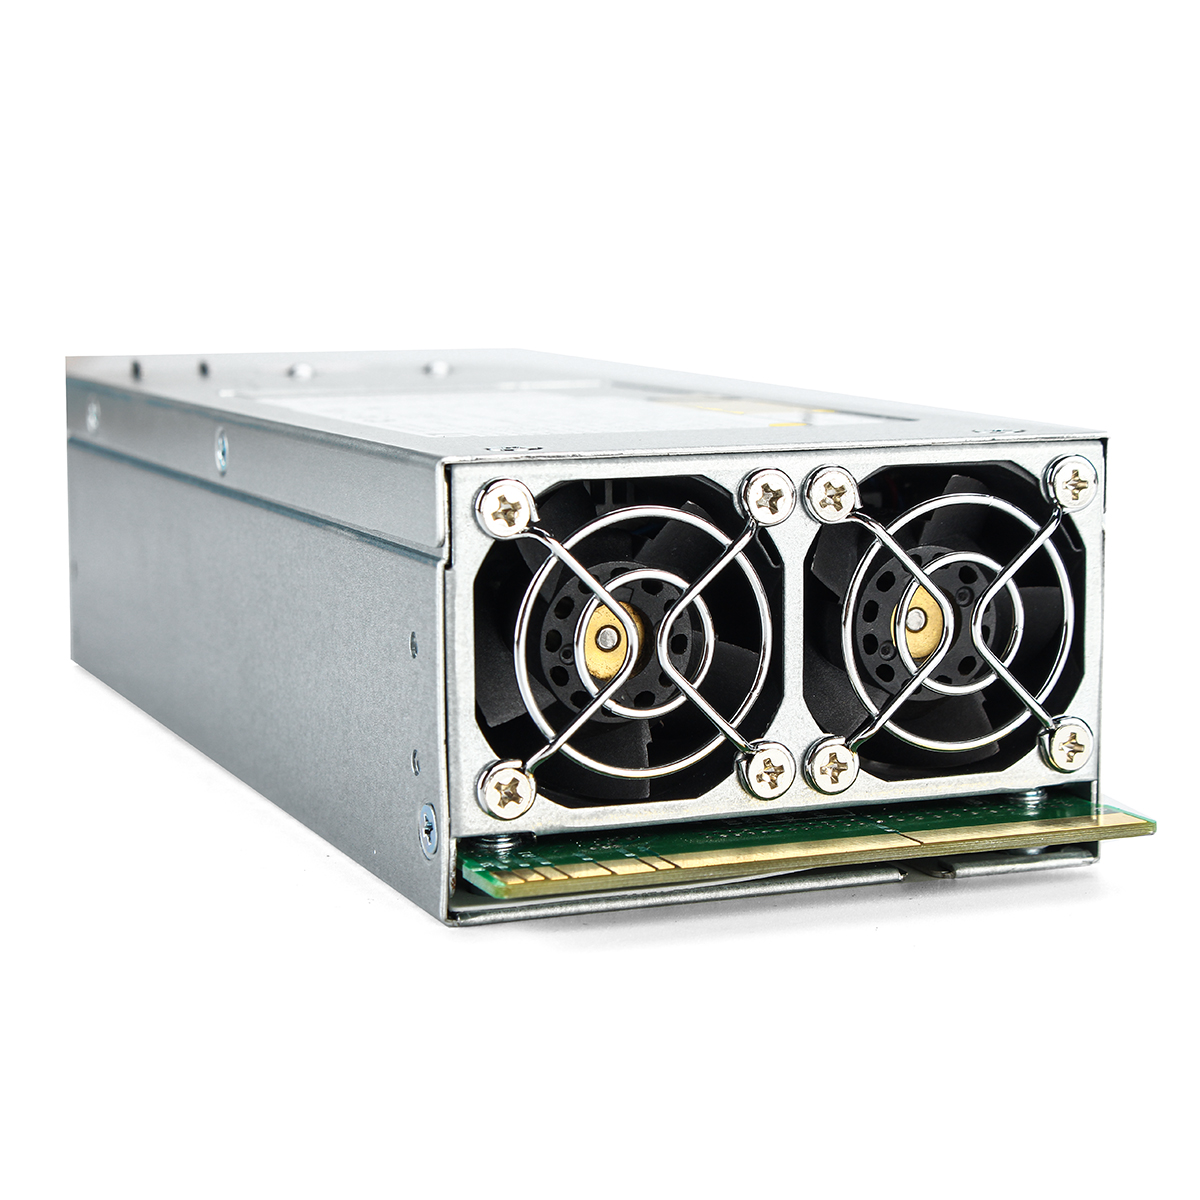 1000W HP DL380G5 1000W Server Power Supply